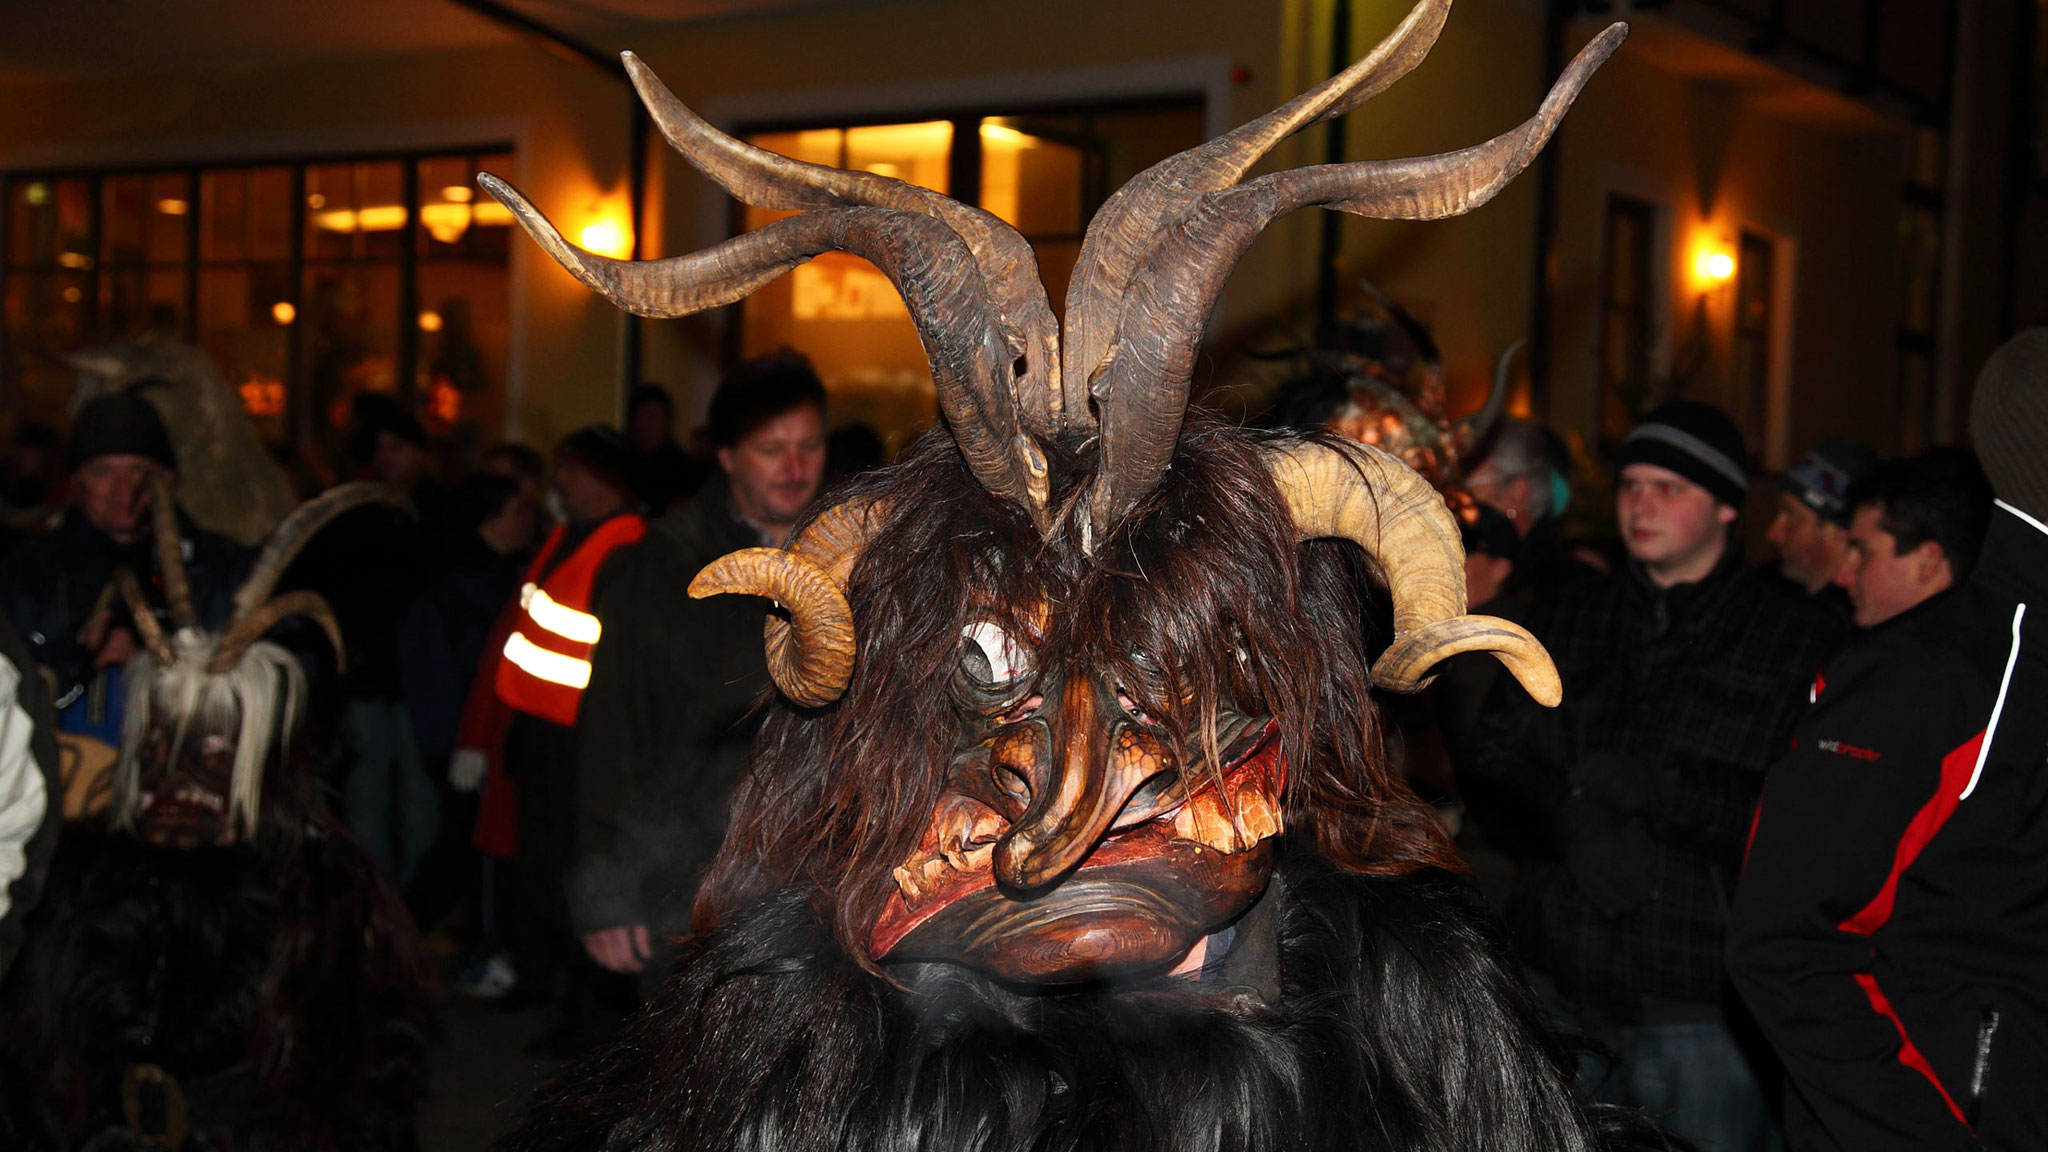 Krampus and Perchten